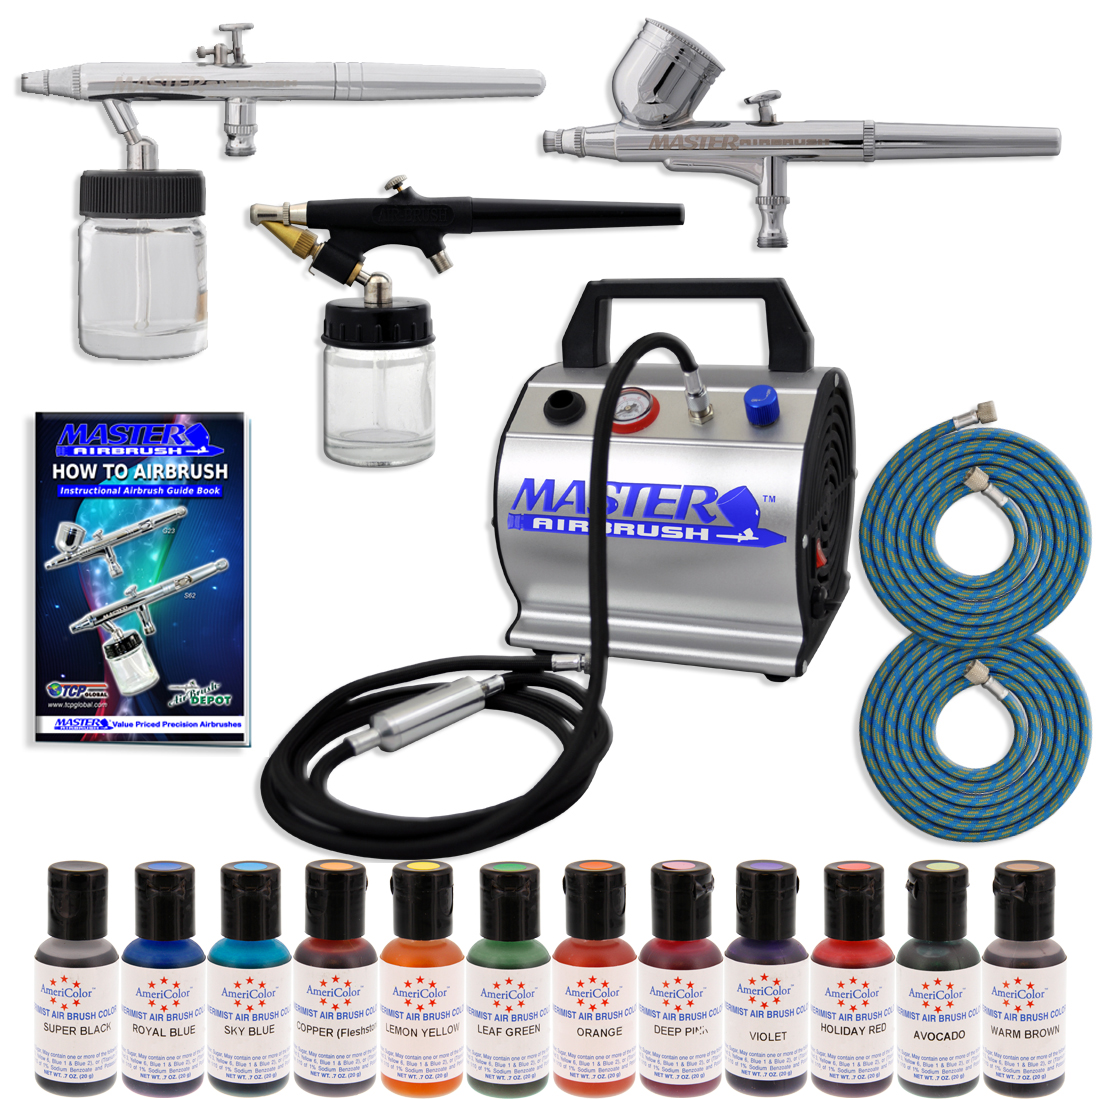 Airbrush For Cake Decorating : Master Premium CAKE DECORATING AIRBRUSH SYSTEM KIT w-3 ...